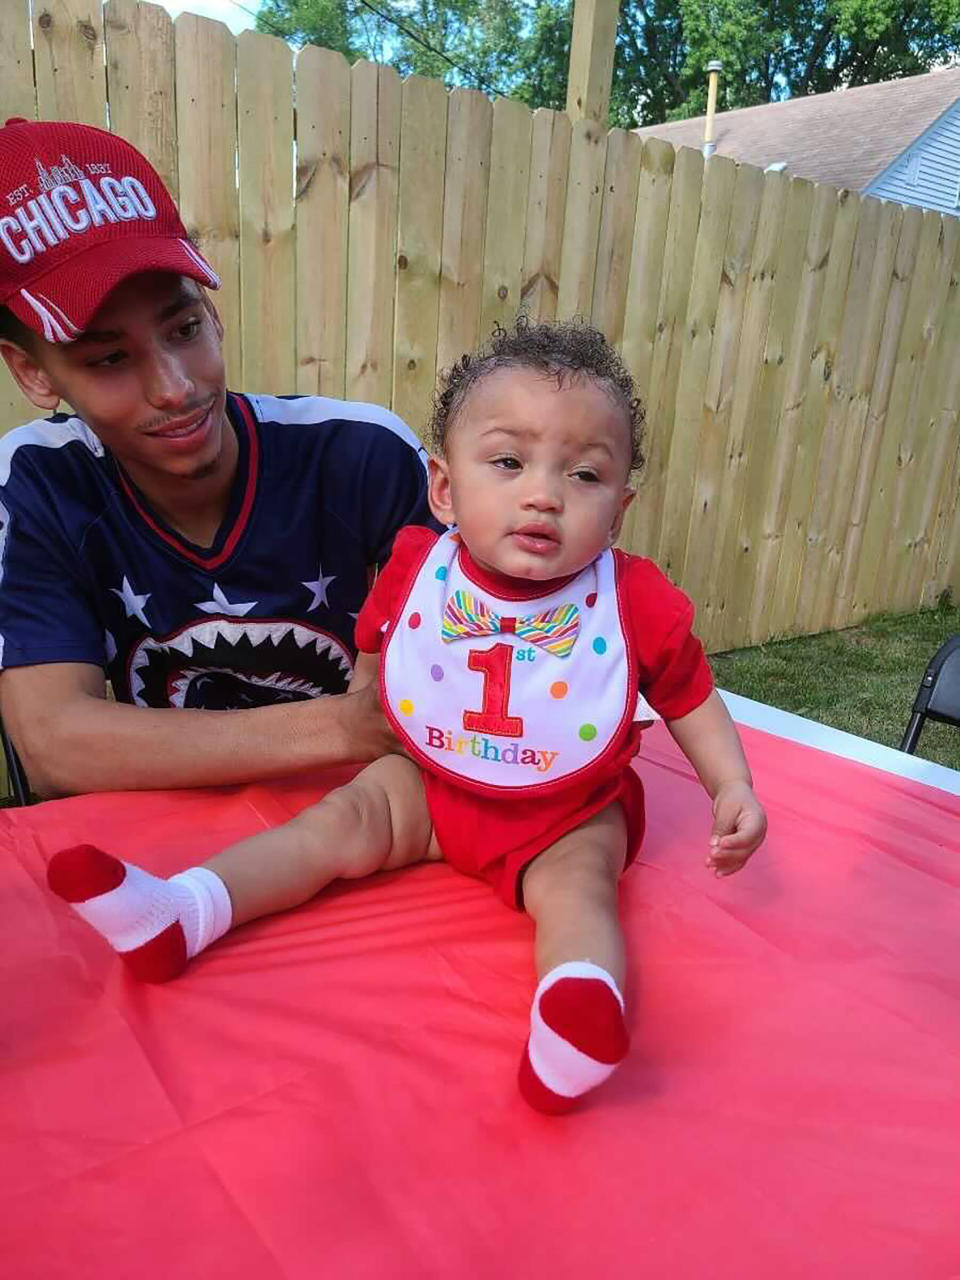 This photo provided by Ben Crump Law, PLLC. shows Daunte Wright and his son Daunte Jr., at his first birthday party. A white police officer who fatally shot Daunte Wright during a traffic stop in a Minneapolis suburb resigned Tuesday, April 13, 2021 as did the city's police chief — moves that the mayor said he hoped would help heal the community and lead to reconciliation after two nights of protests and unrest. (Ben Crump Law, PLLC. via AP)